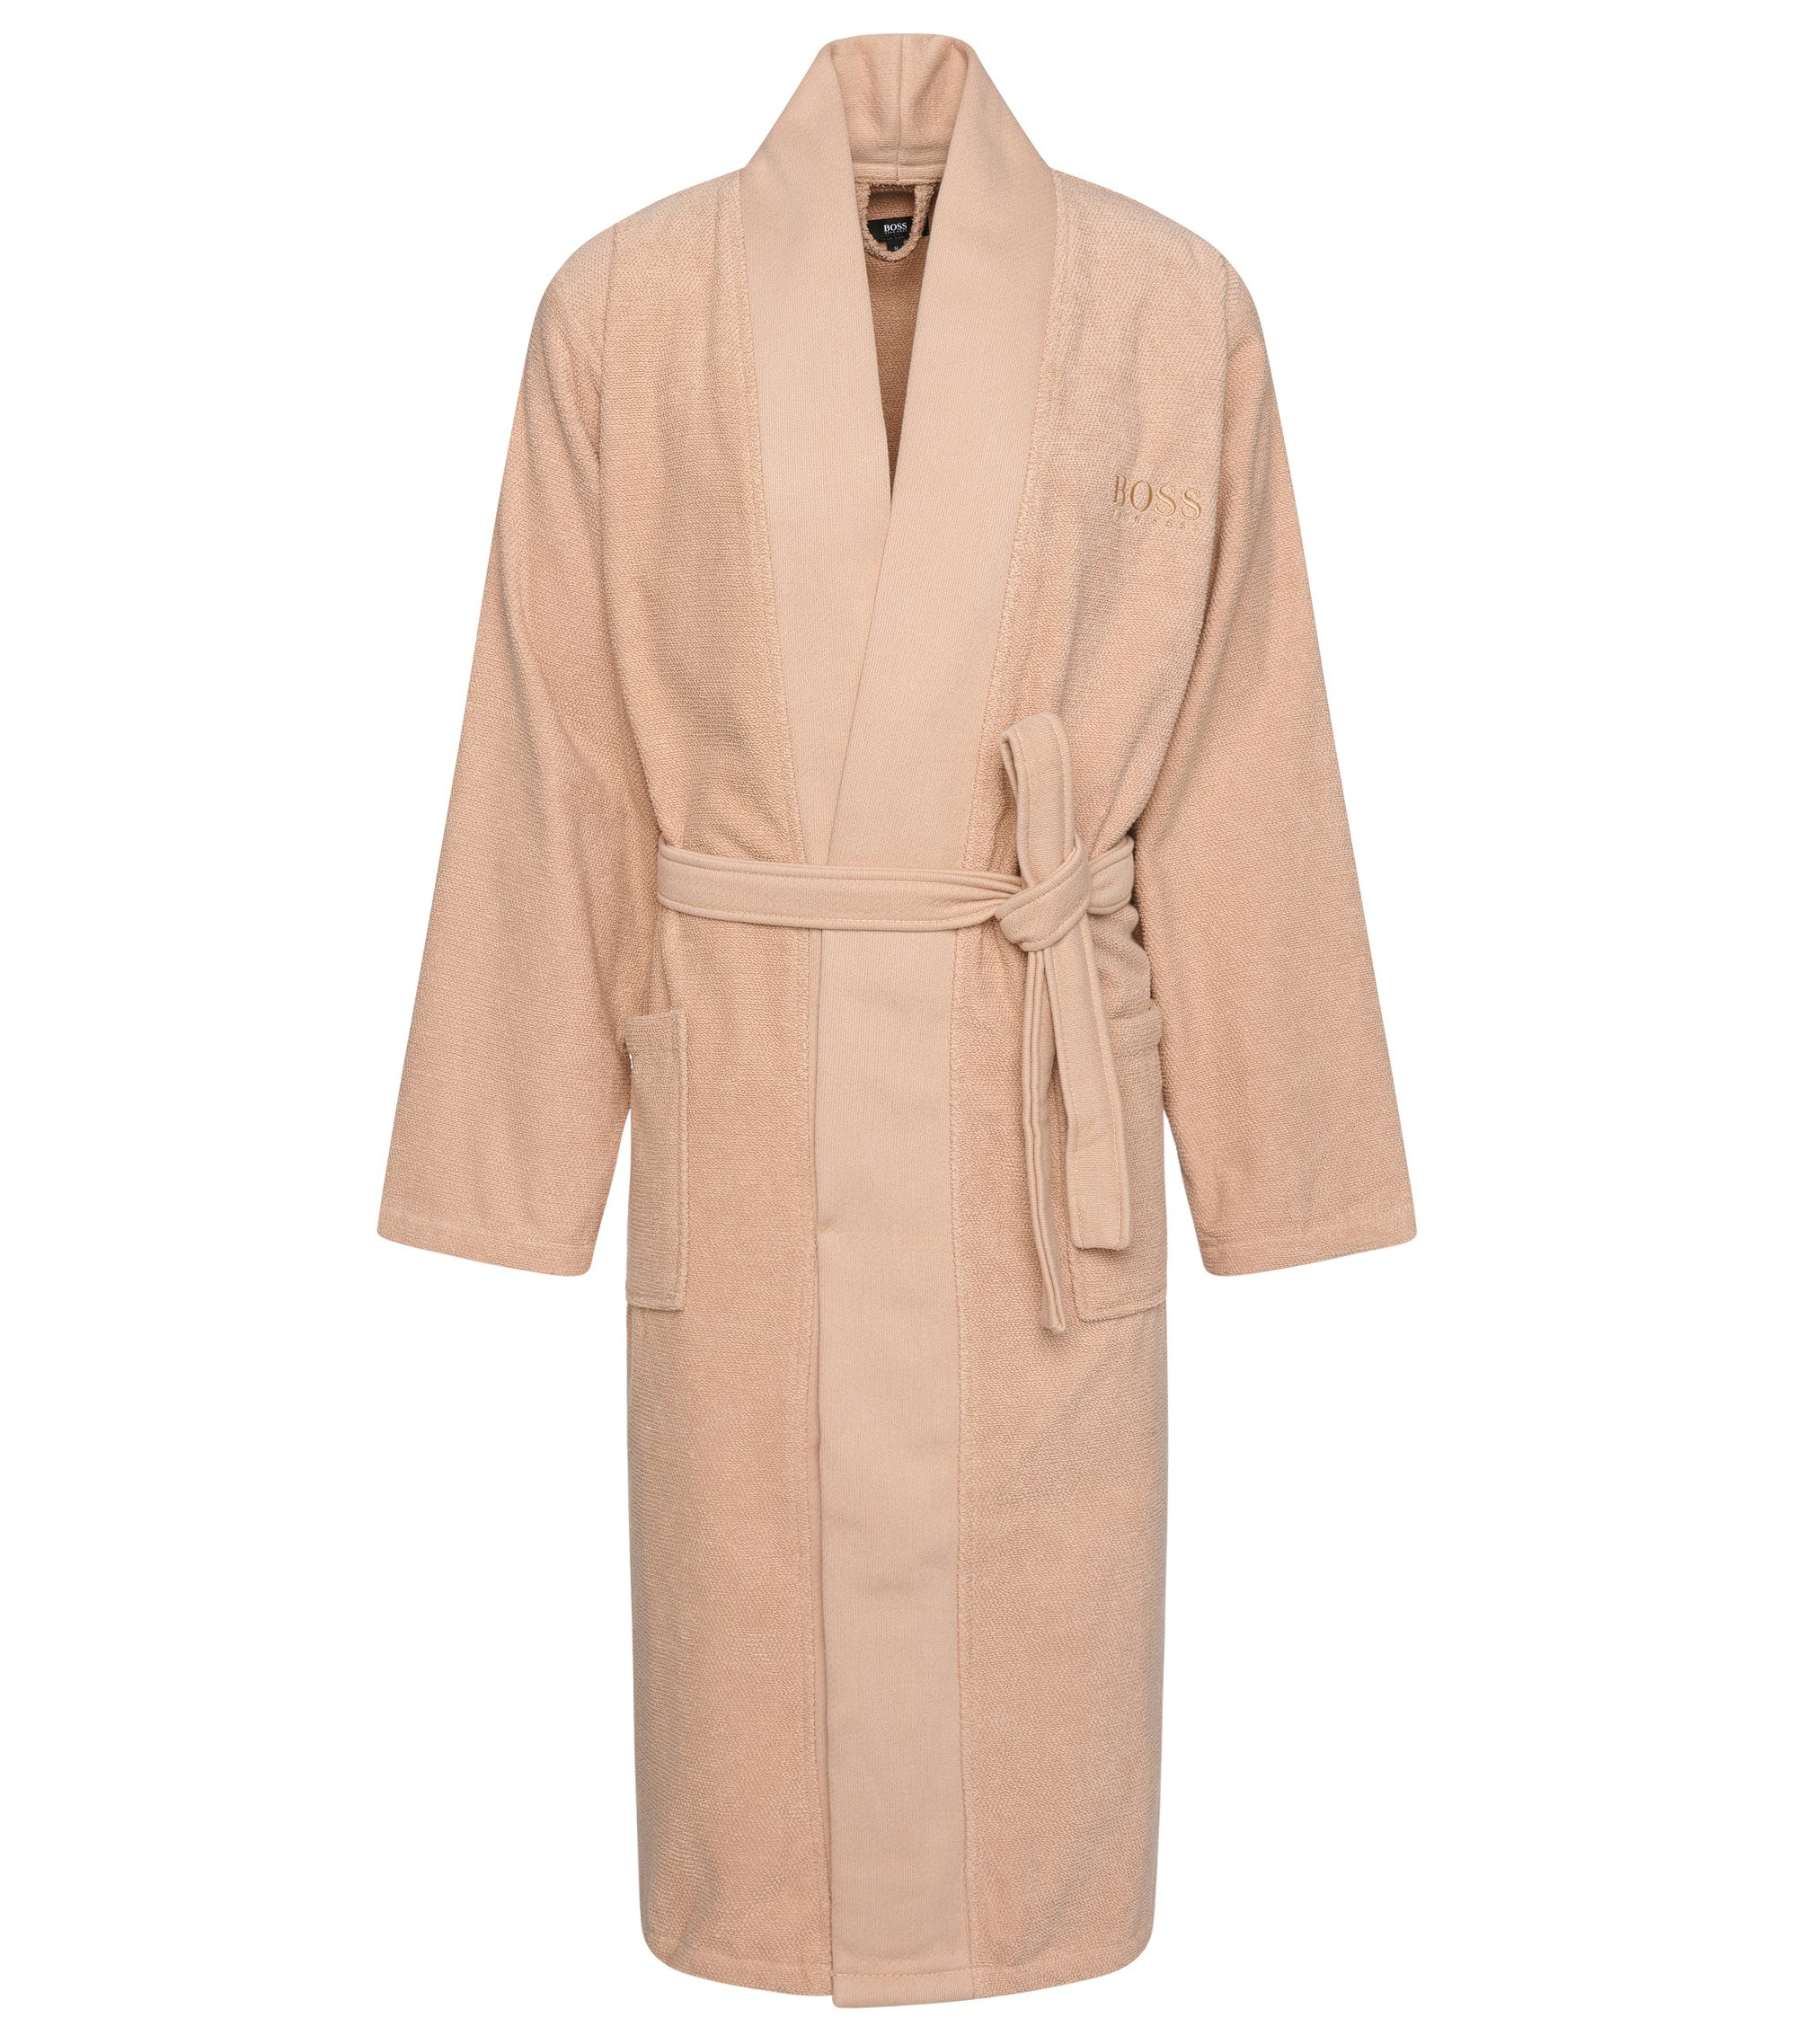 Kimono-style bathrobe in combed Aegean cotton, Beige